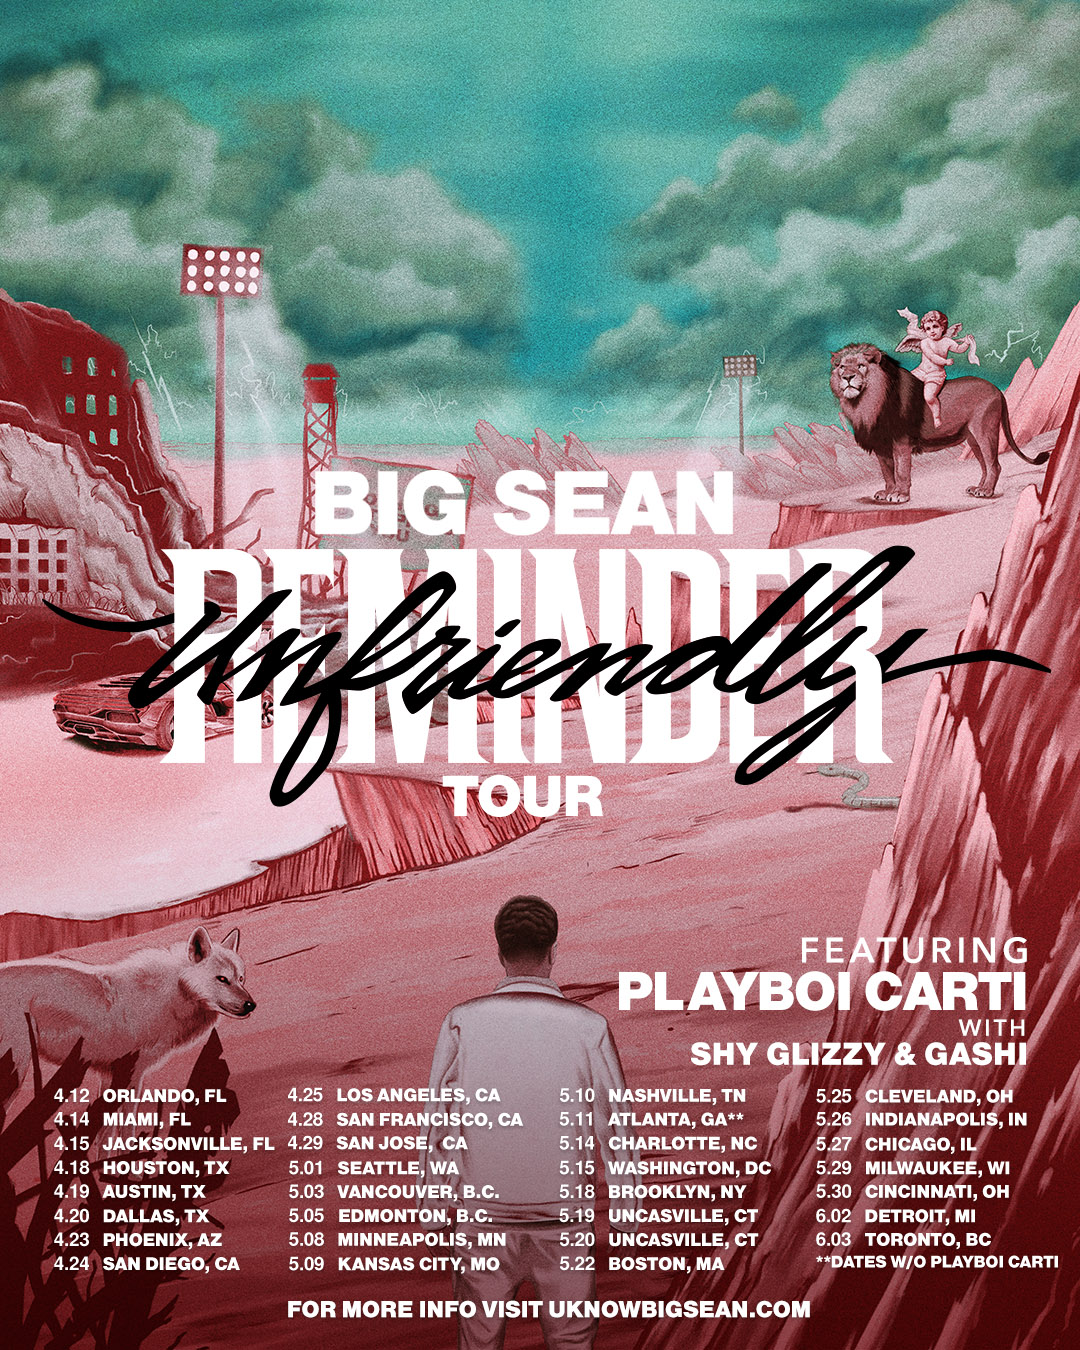 Rapper Big Sean bringing hip-hop celebration to Cleveland